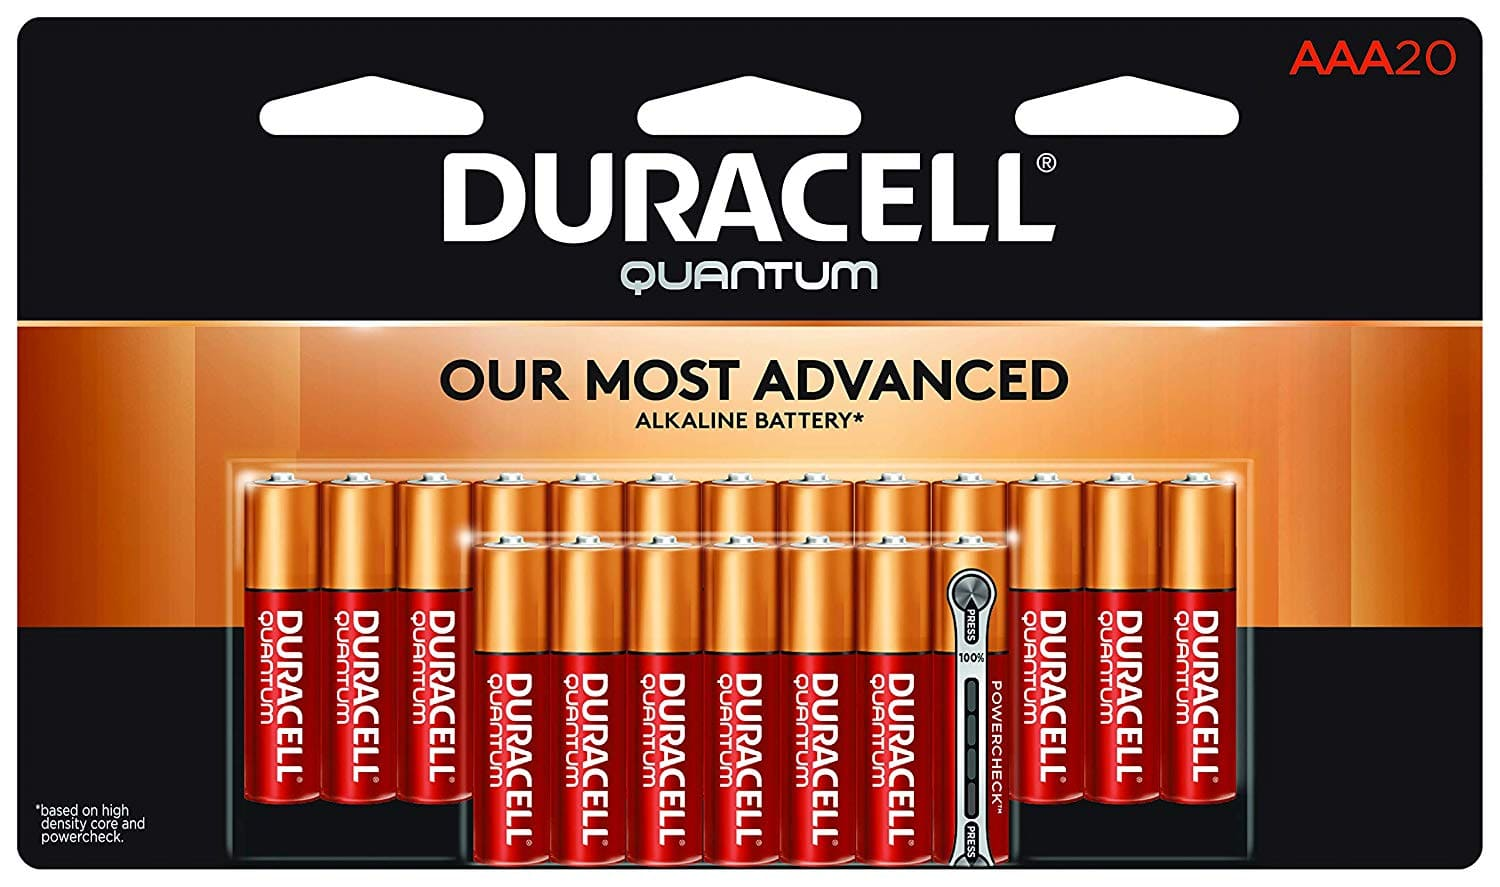 Duracell - Quantum AAA Alkaline Batteries - 20-count - $8.23 AC at Amazon